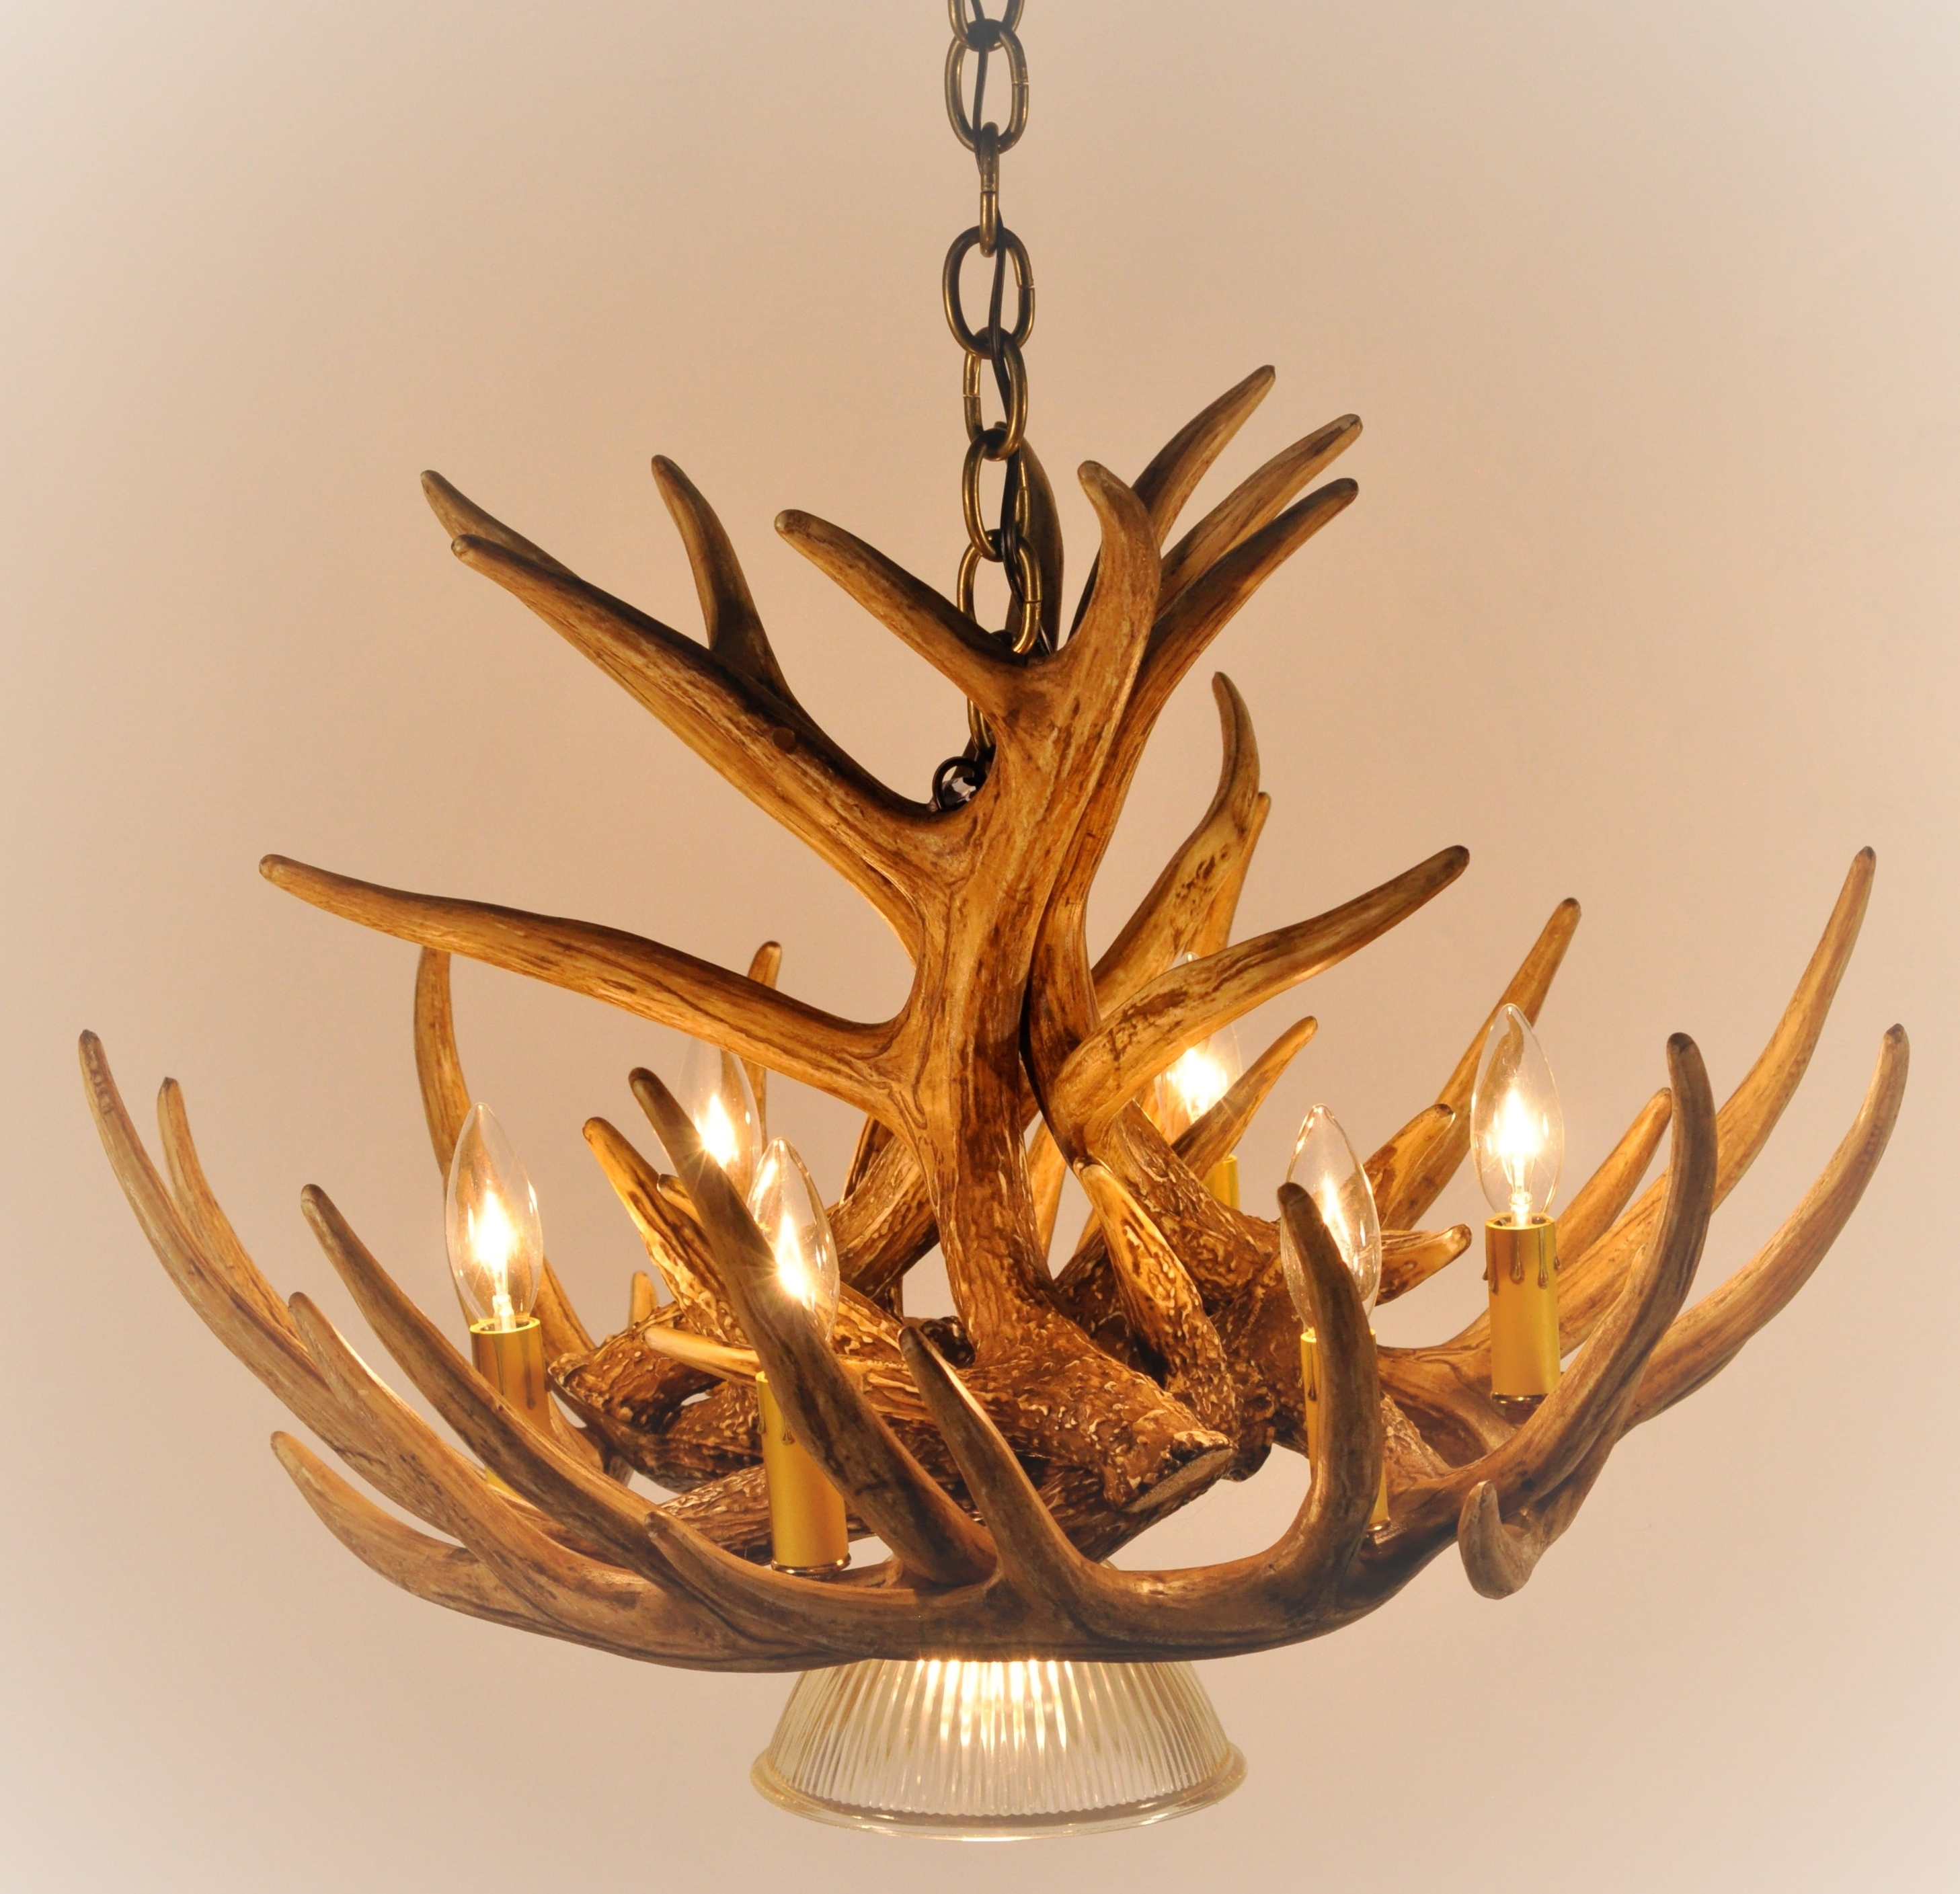 Whitetail Deer 9 Antler Cascade Chandelier With 1 Downlight* – Cast Pertaining To Newest Antlers Chandeliers (View 3 of 20)